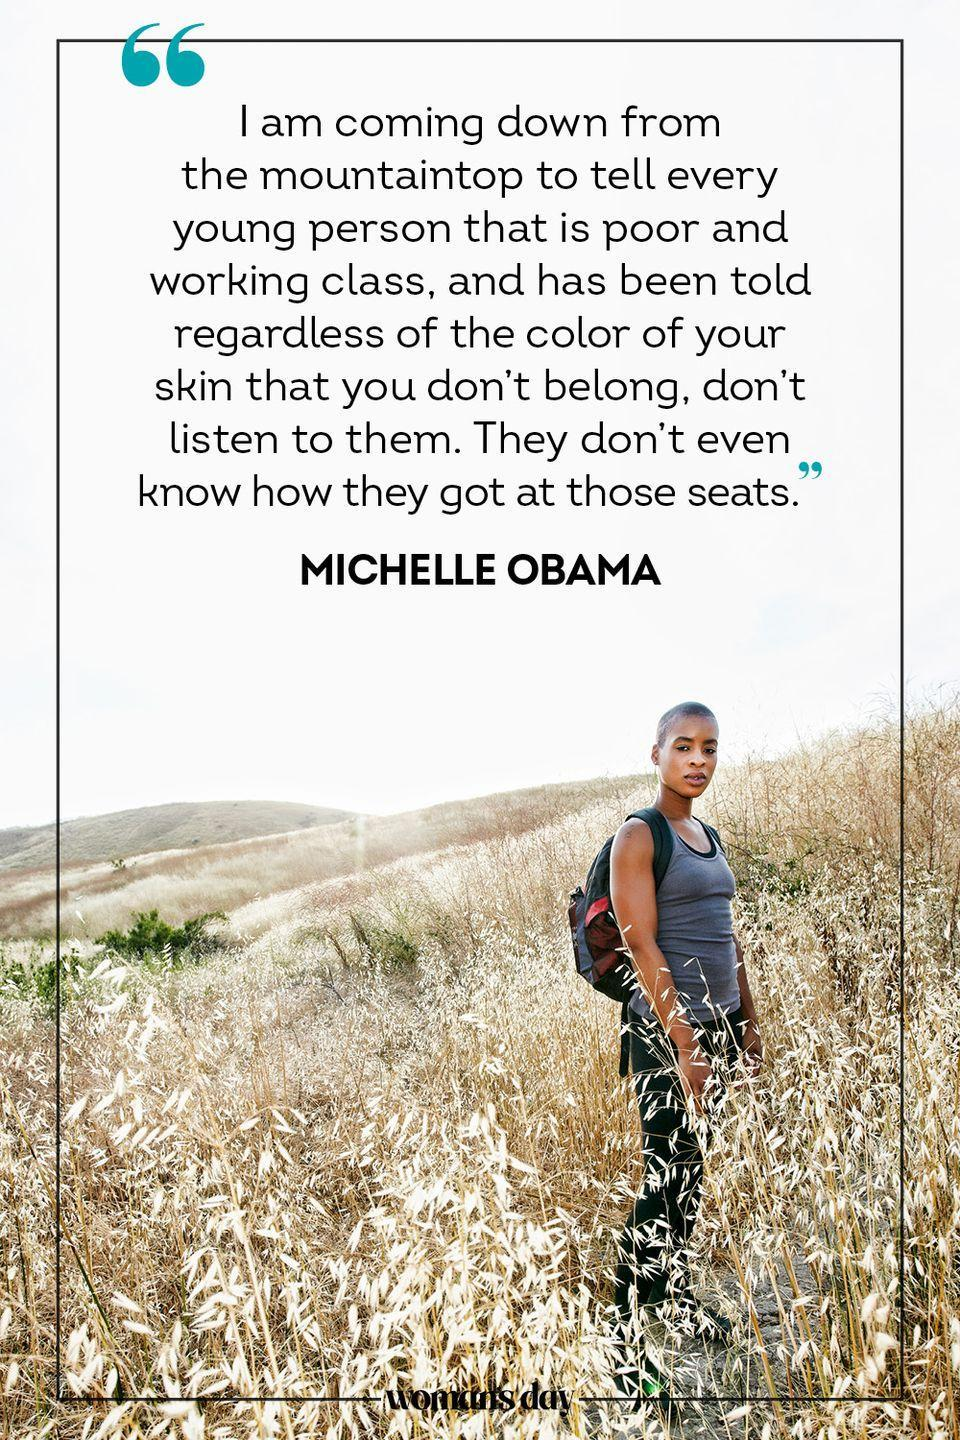 """<p>""""I am coming down from the mountaintop to tell every young person that is poor and working class, and has been told regardless of the color of your skin that you don't belong, don't listen to them. They don't even know how they got at those seats."""" — Michelle Obama</p>"""